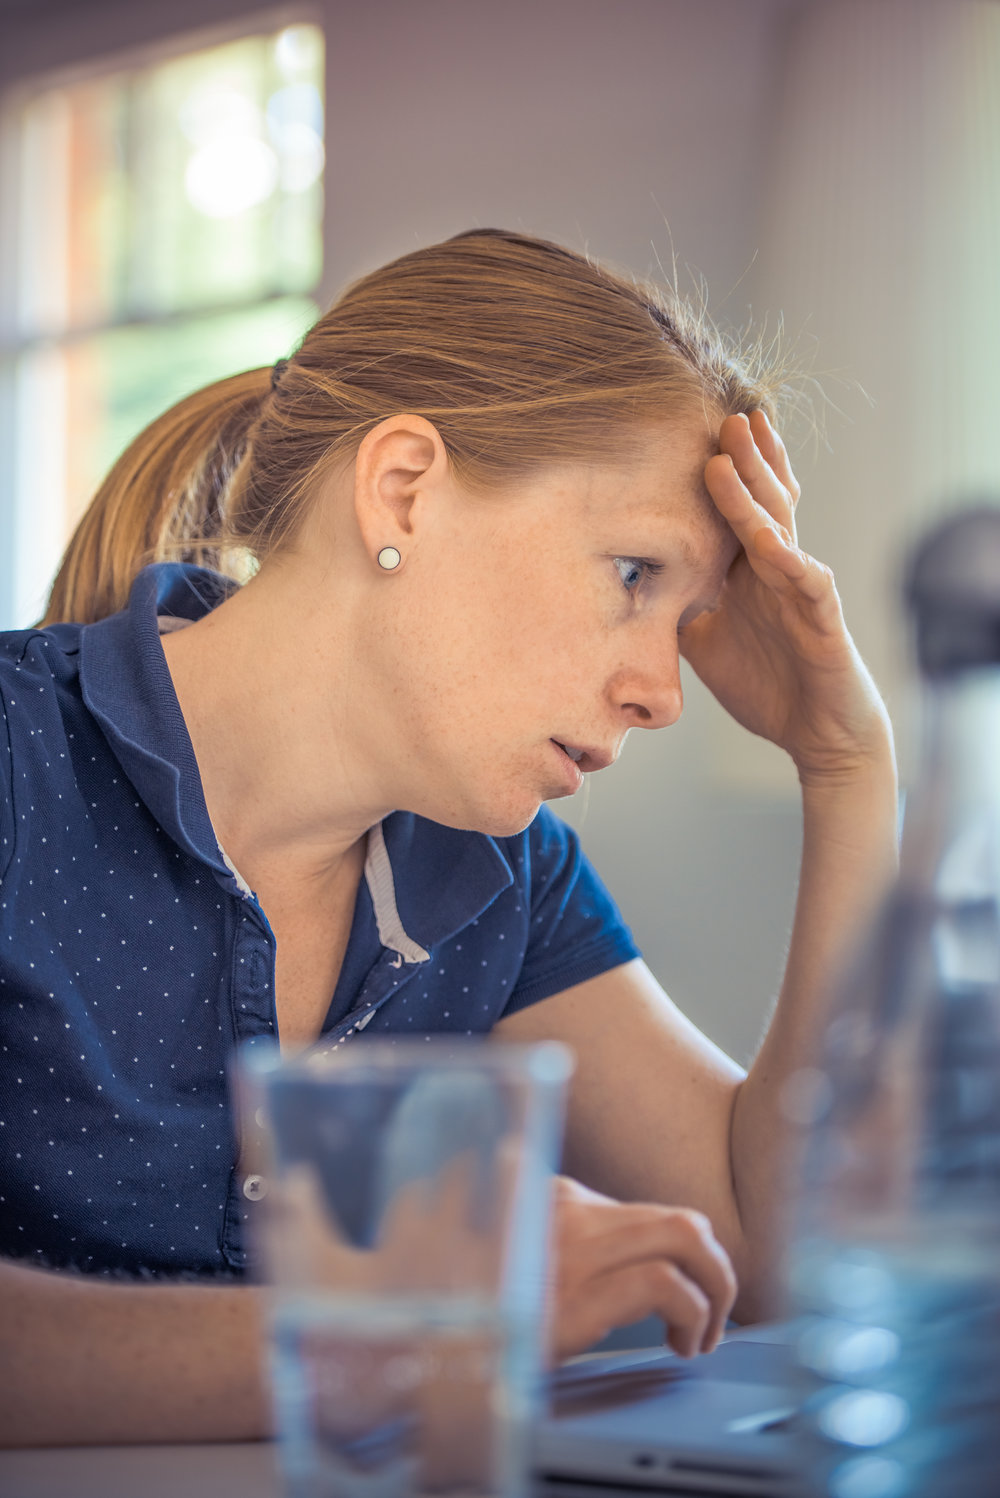 Learn anxiety and stress coping in Palm Harbor counseling.